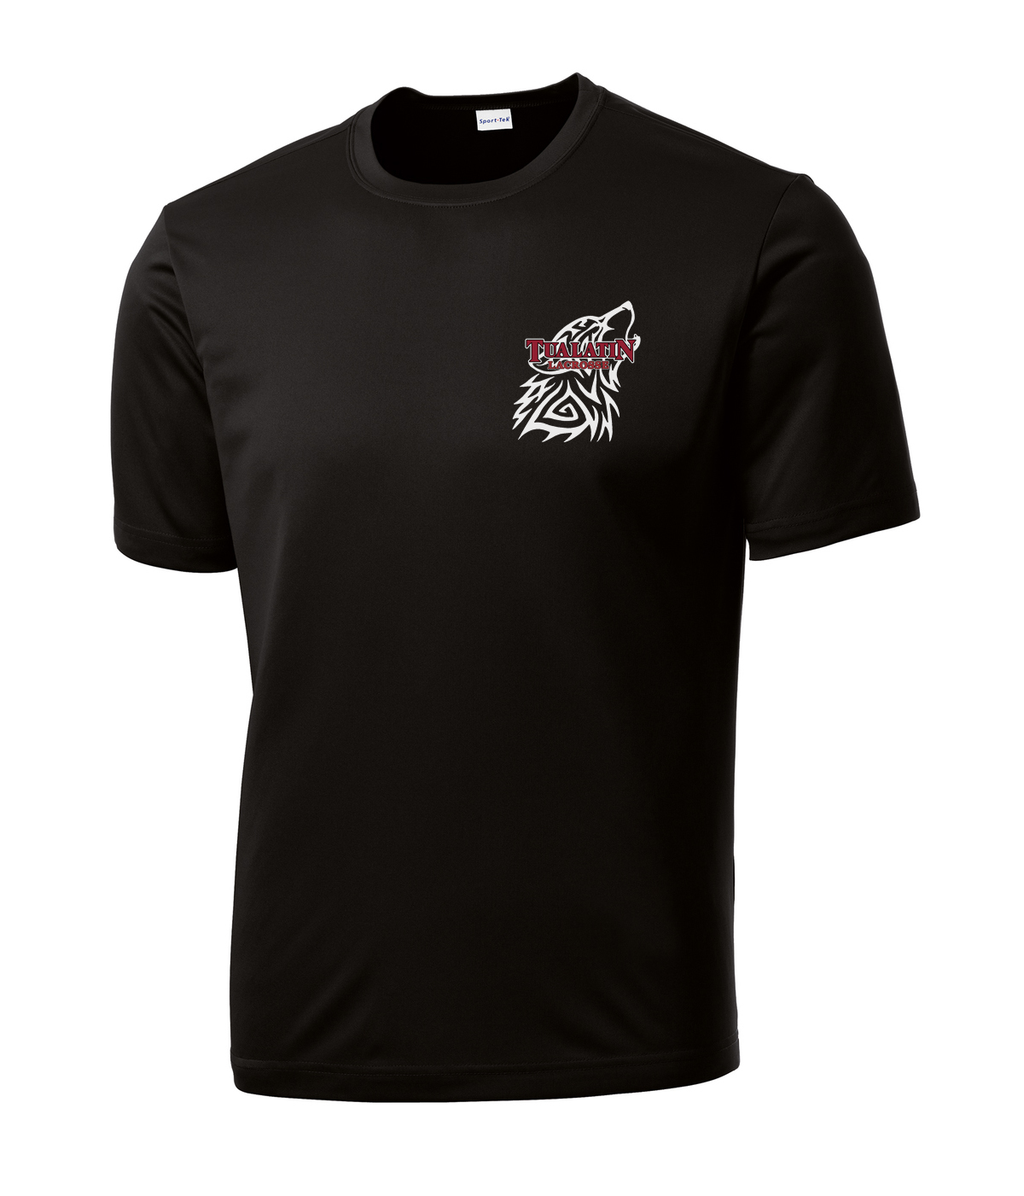 Tualatin Black Performance T-Shirt